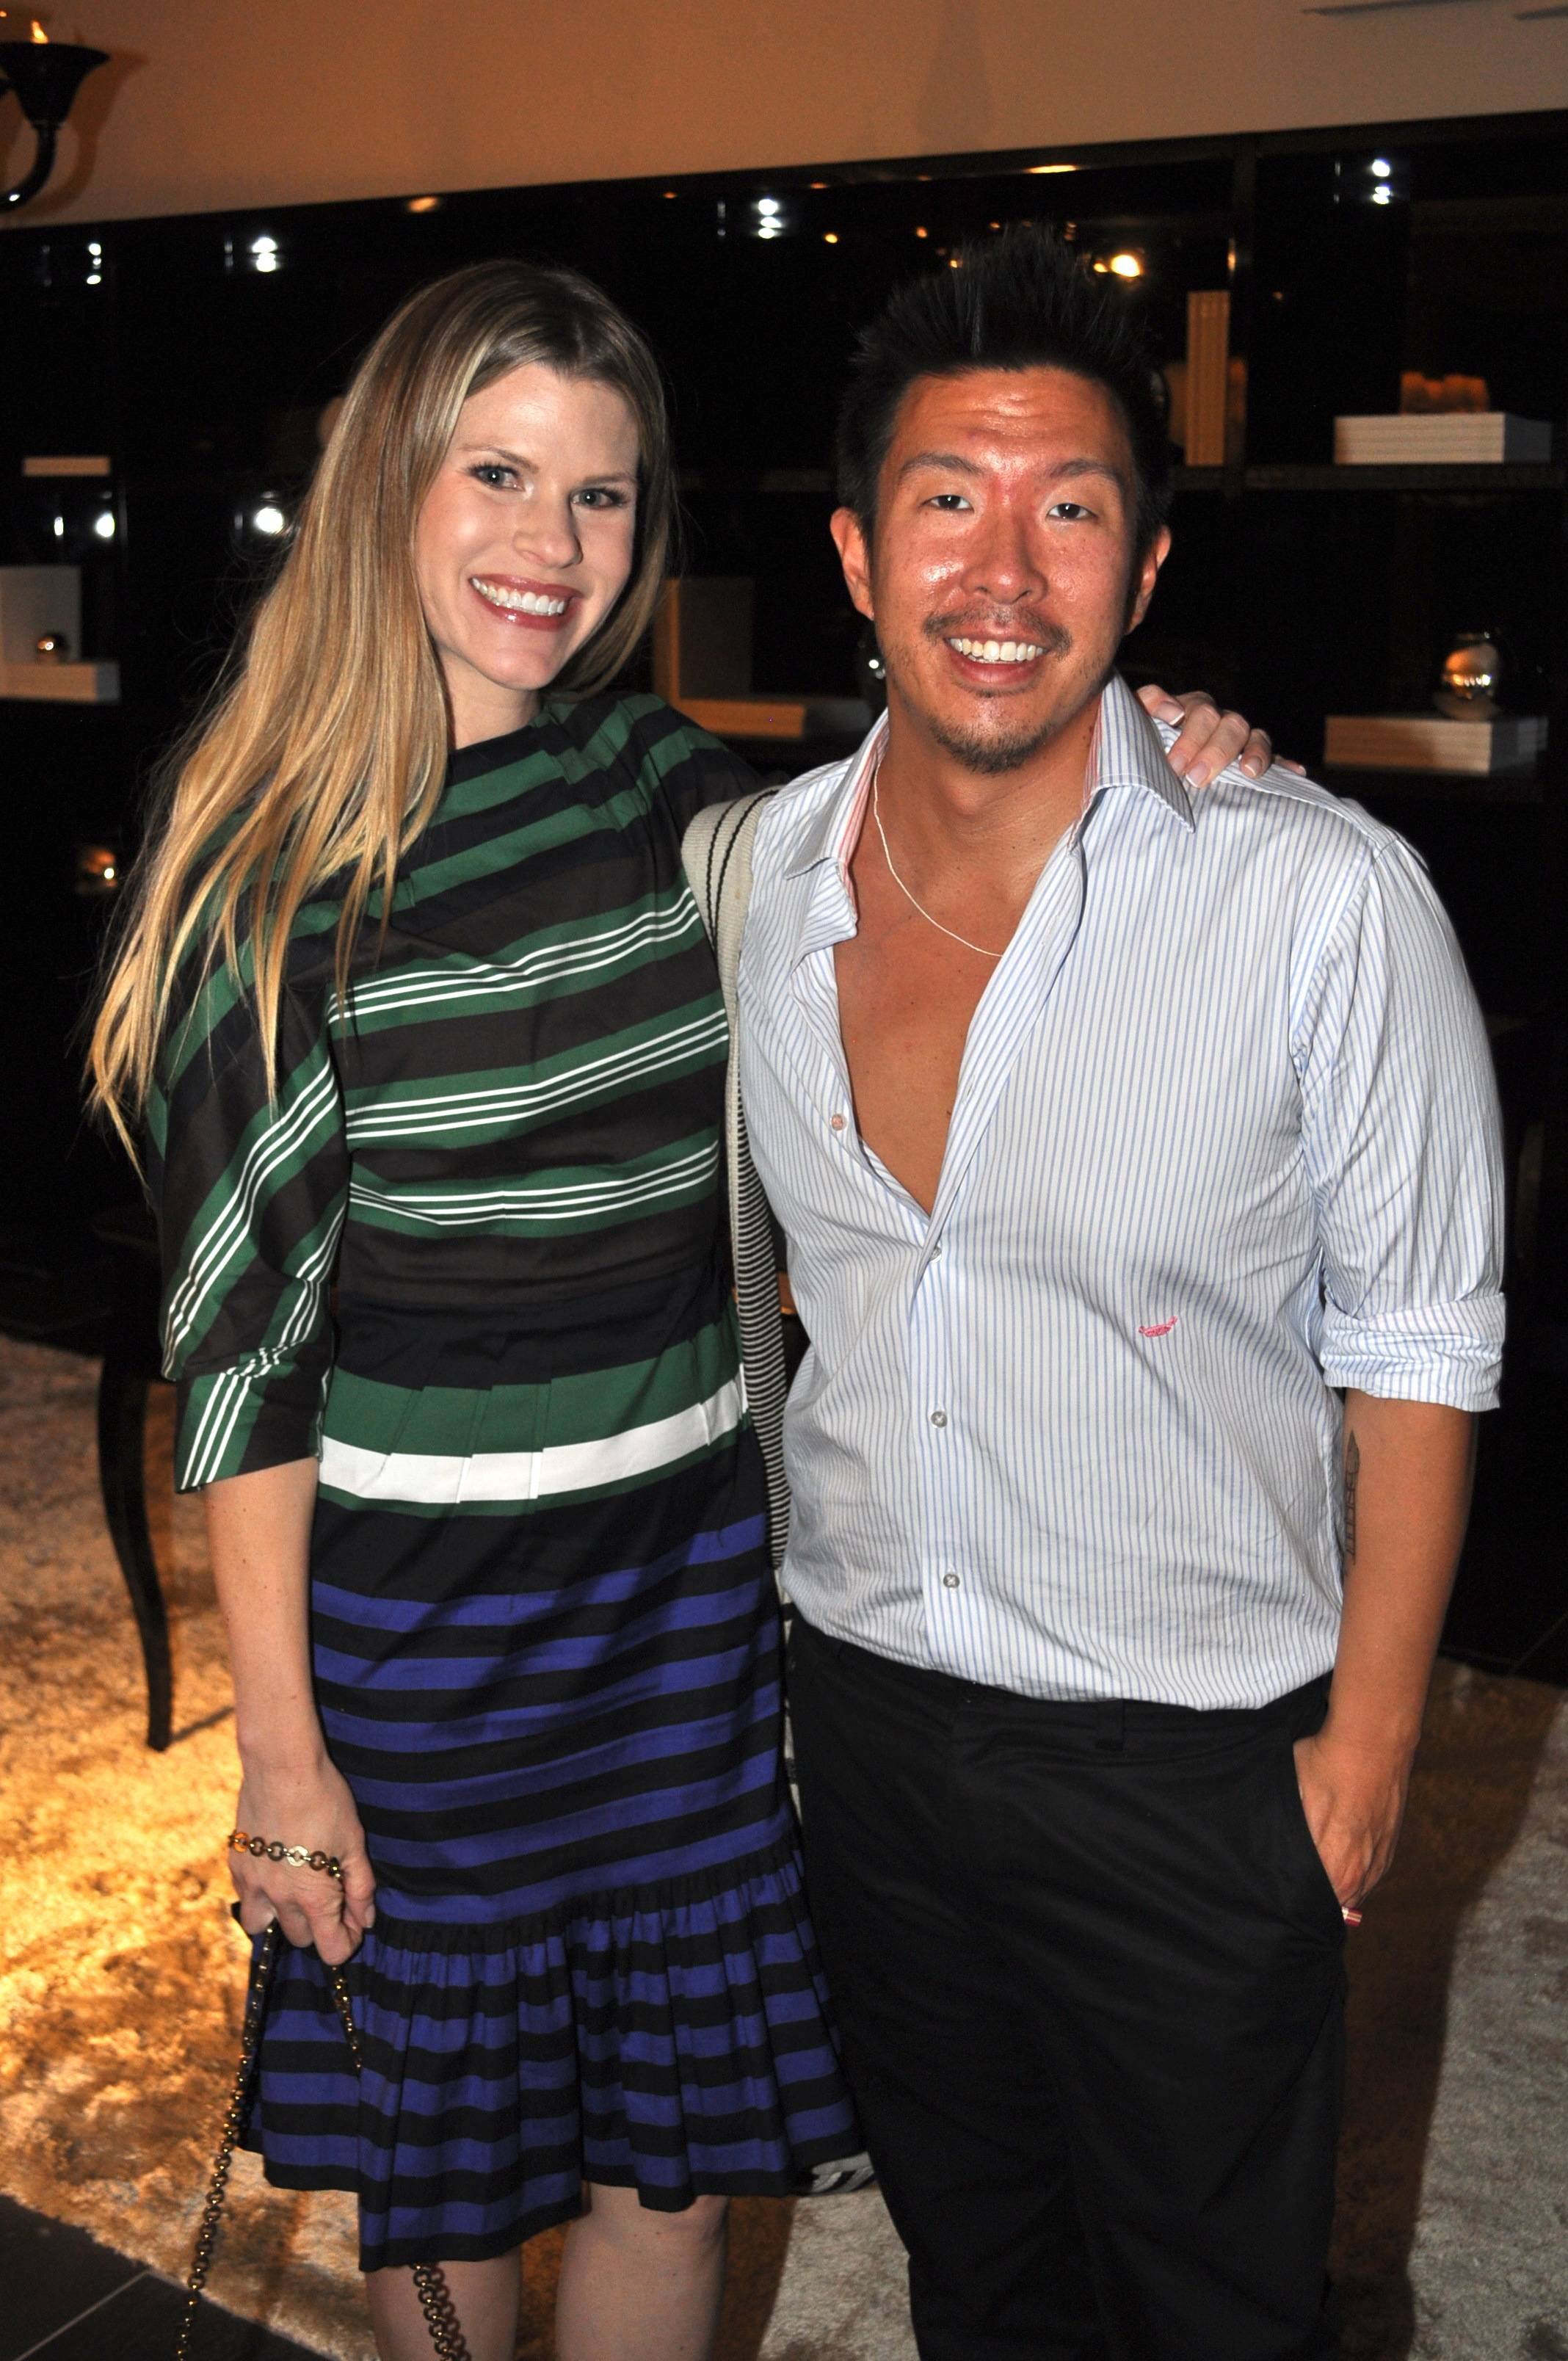 Suzy Buckley & John Lin